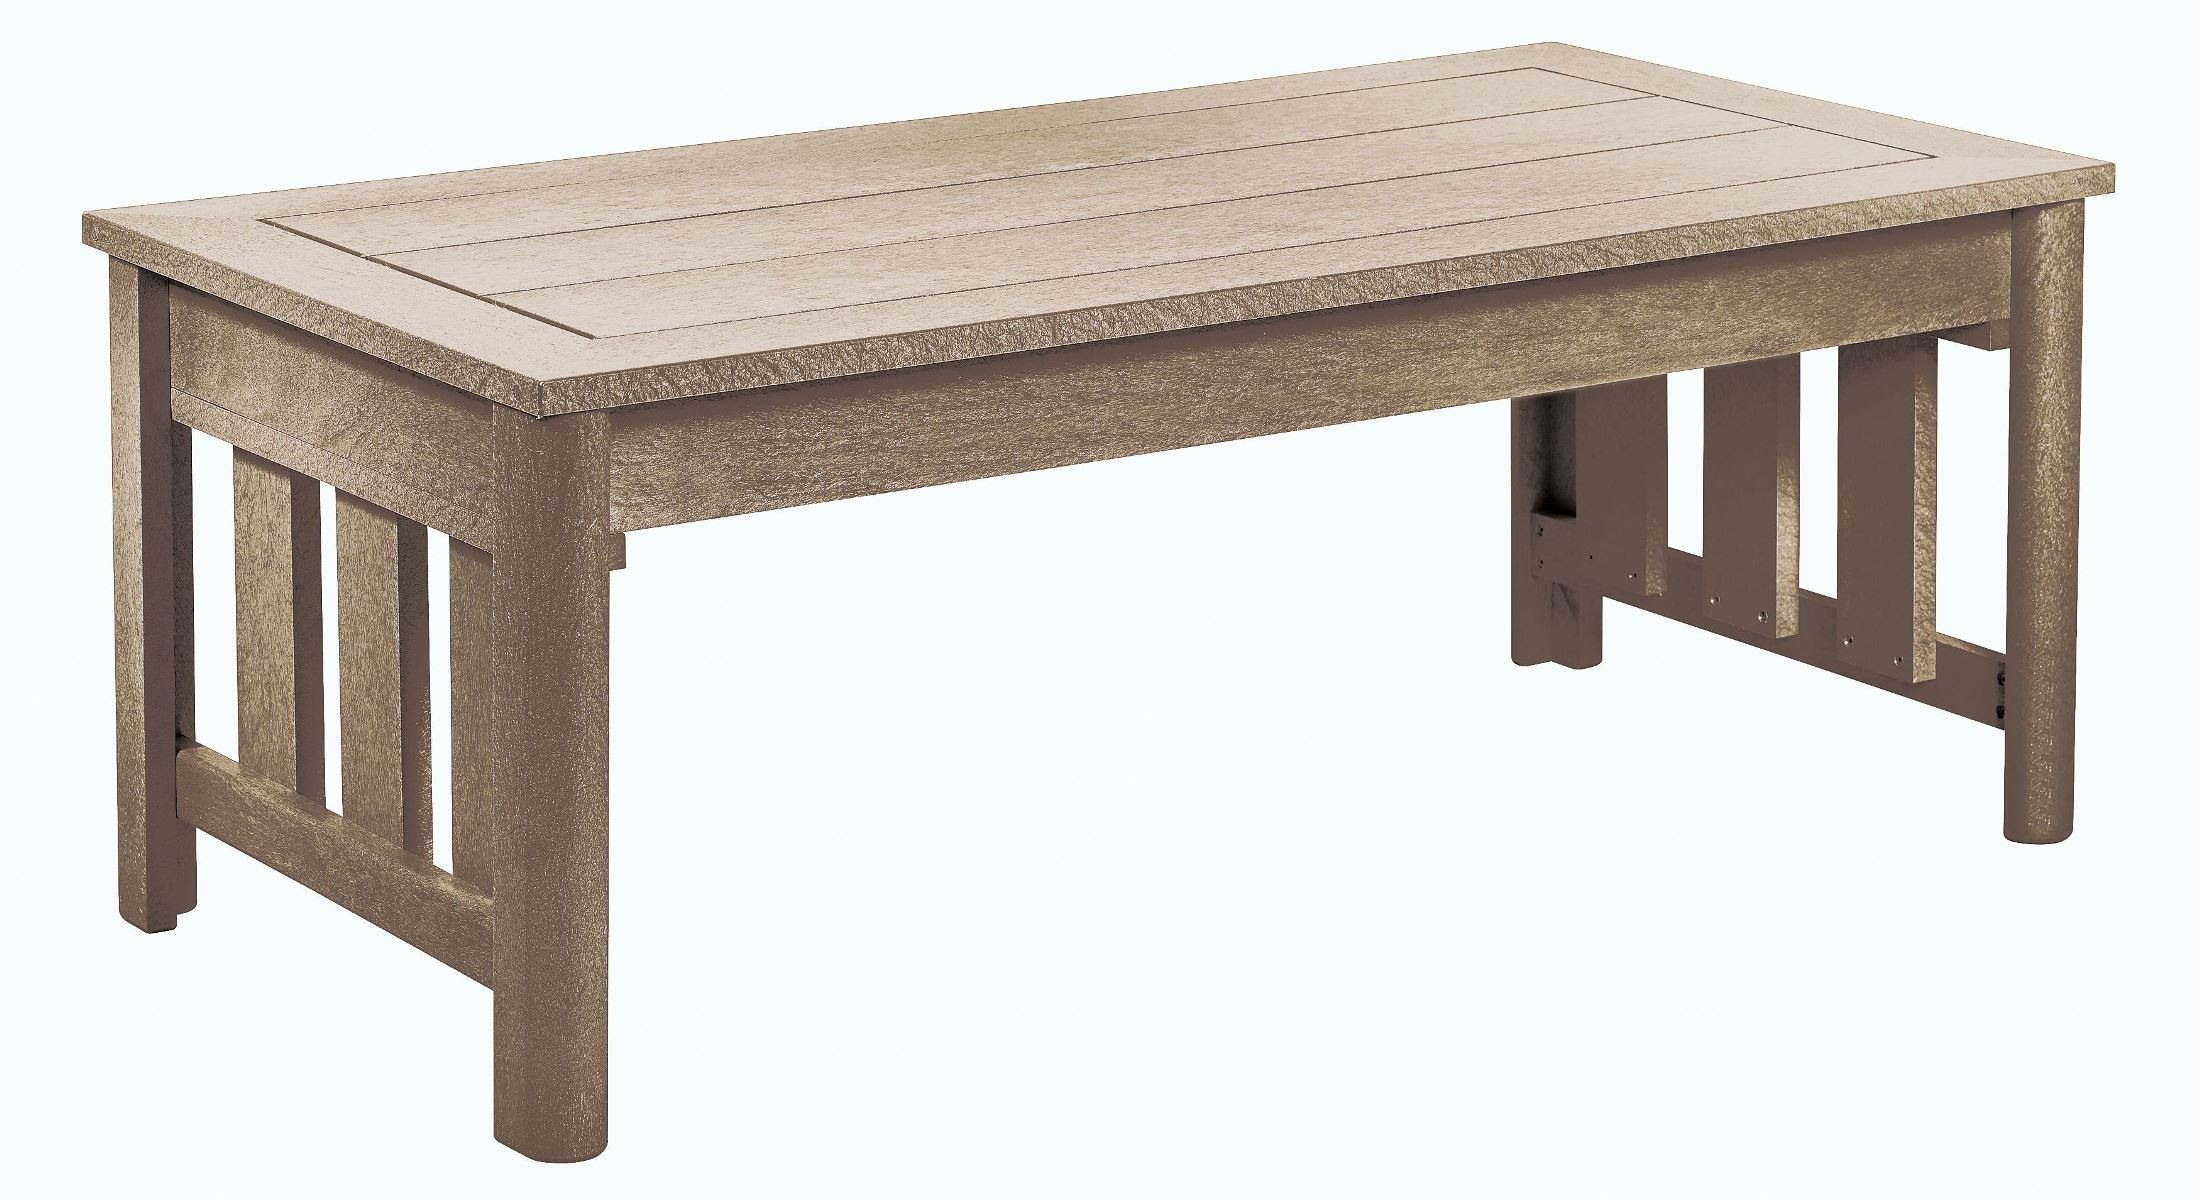 Stratford beige coffee table from cr plastic dst147 07 for 07 08 championship table